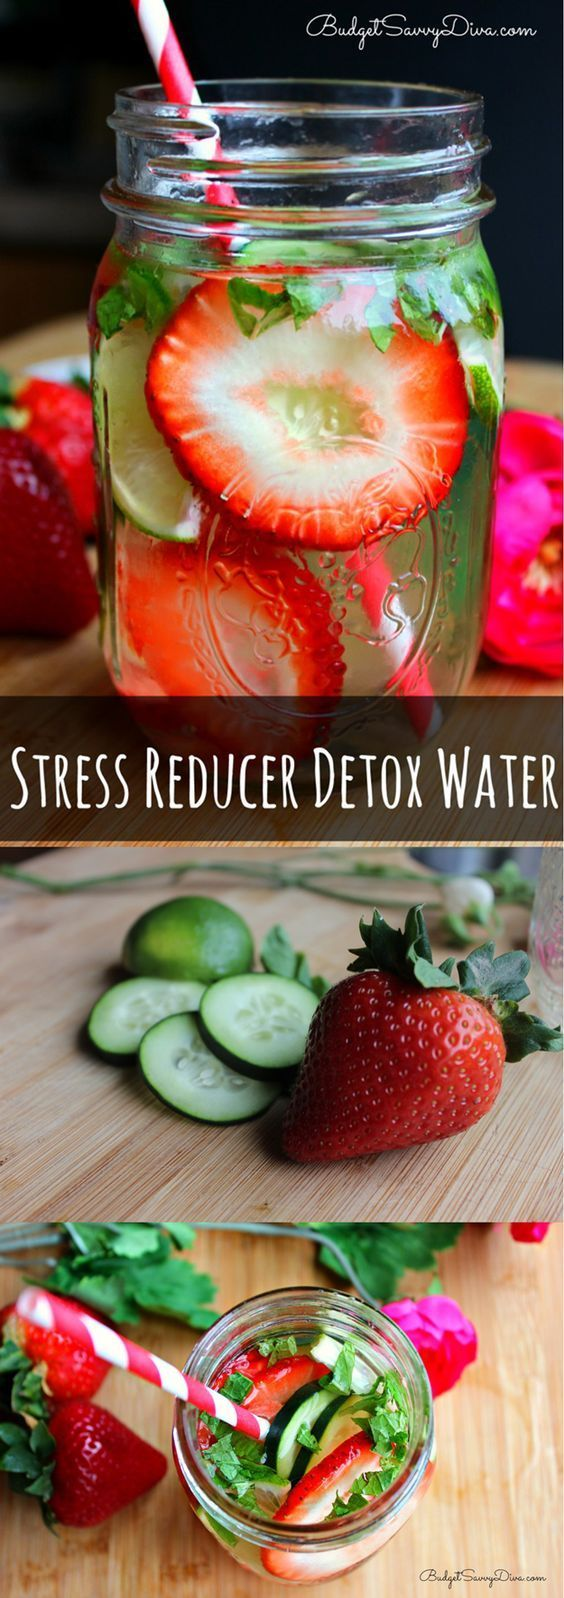 352 best healthy detox images on pinterest kitchens cleanse stress relief drinks stress reducer detox water easy healthy detox water recipe by diy forumfinder Gallery